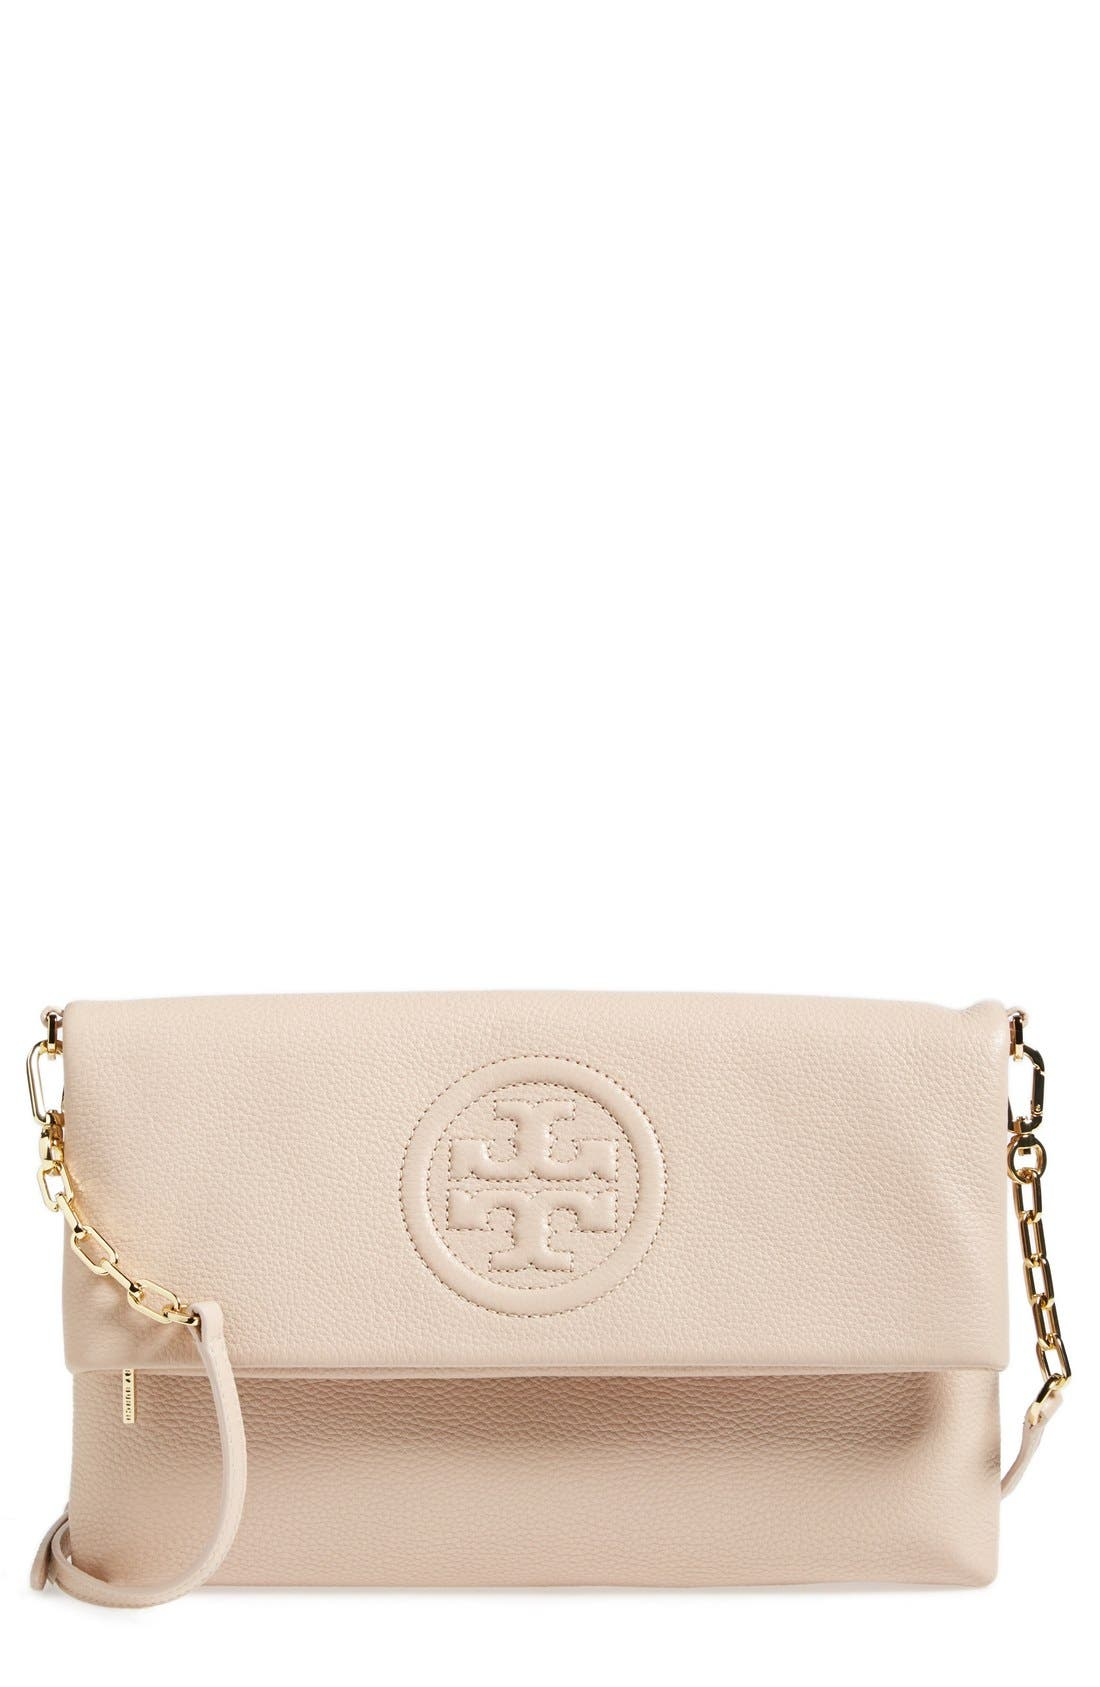 Alternate Image 1 Selected - Tory Burch 'Bombe' Foldover Clutch